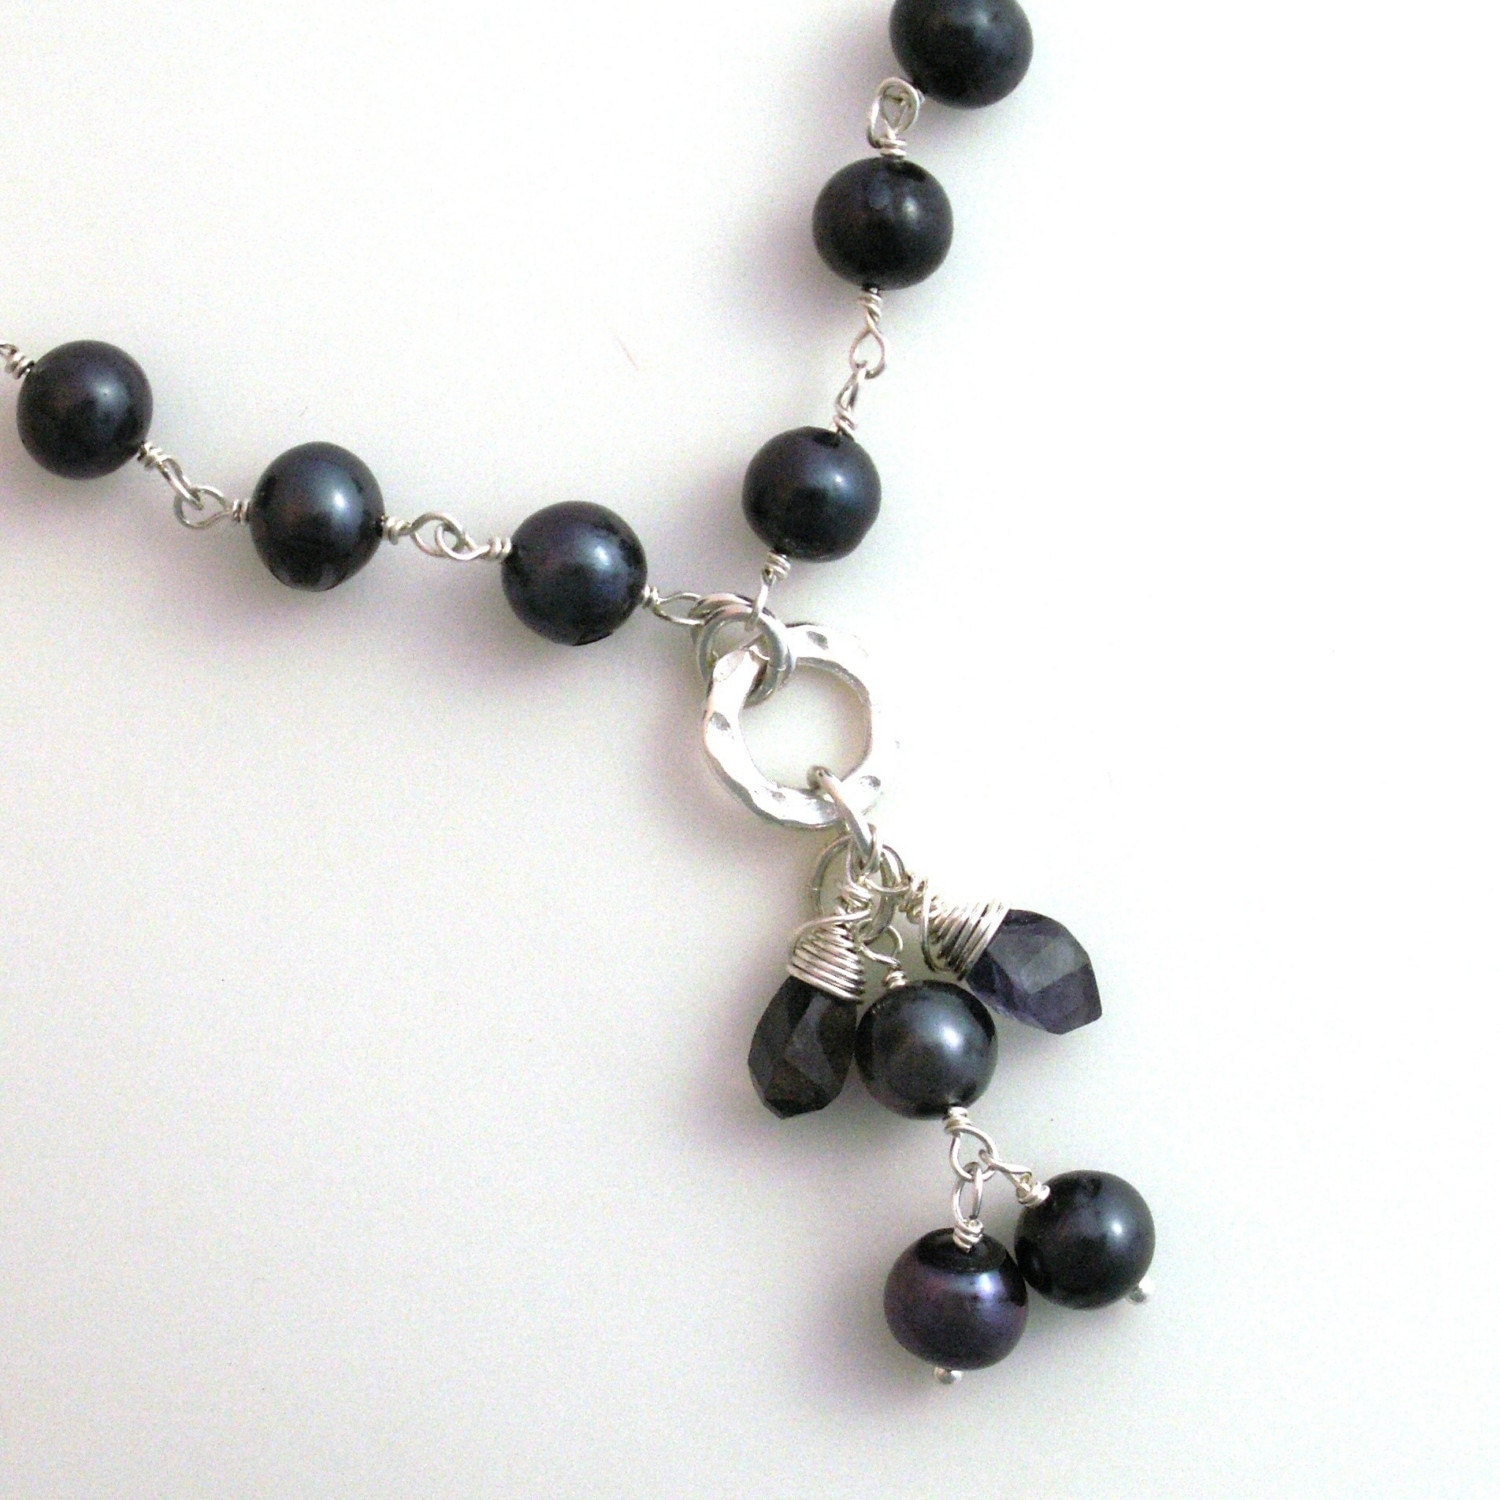 necklace handcrafted jewelry sterling silver dark blue pearls iolite